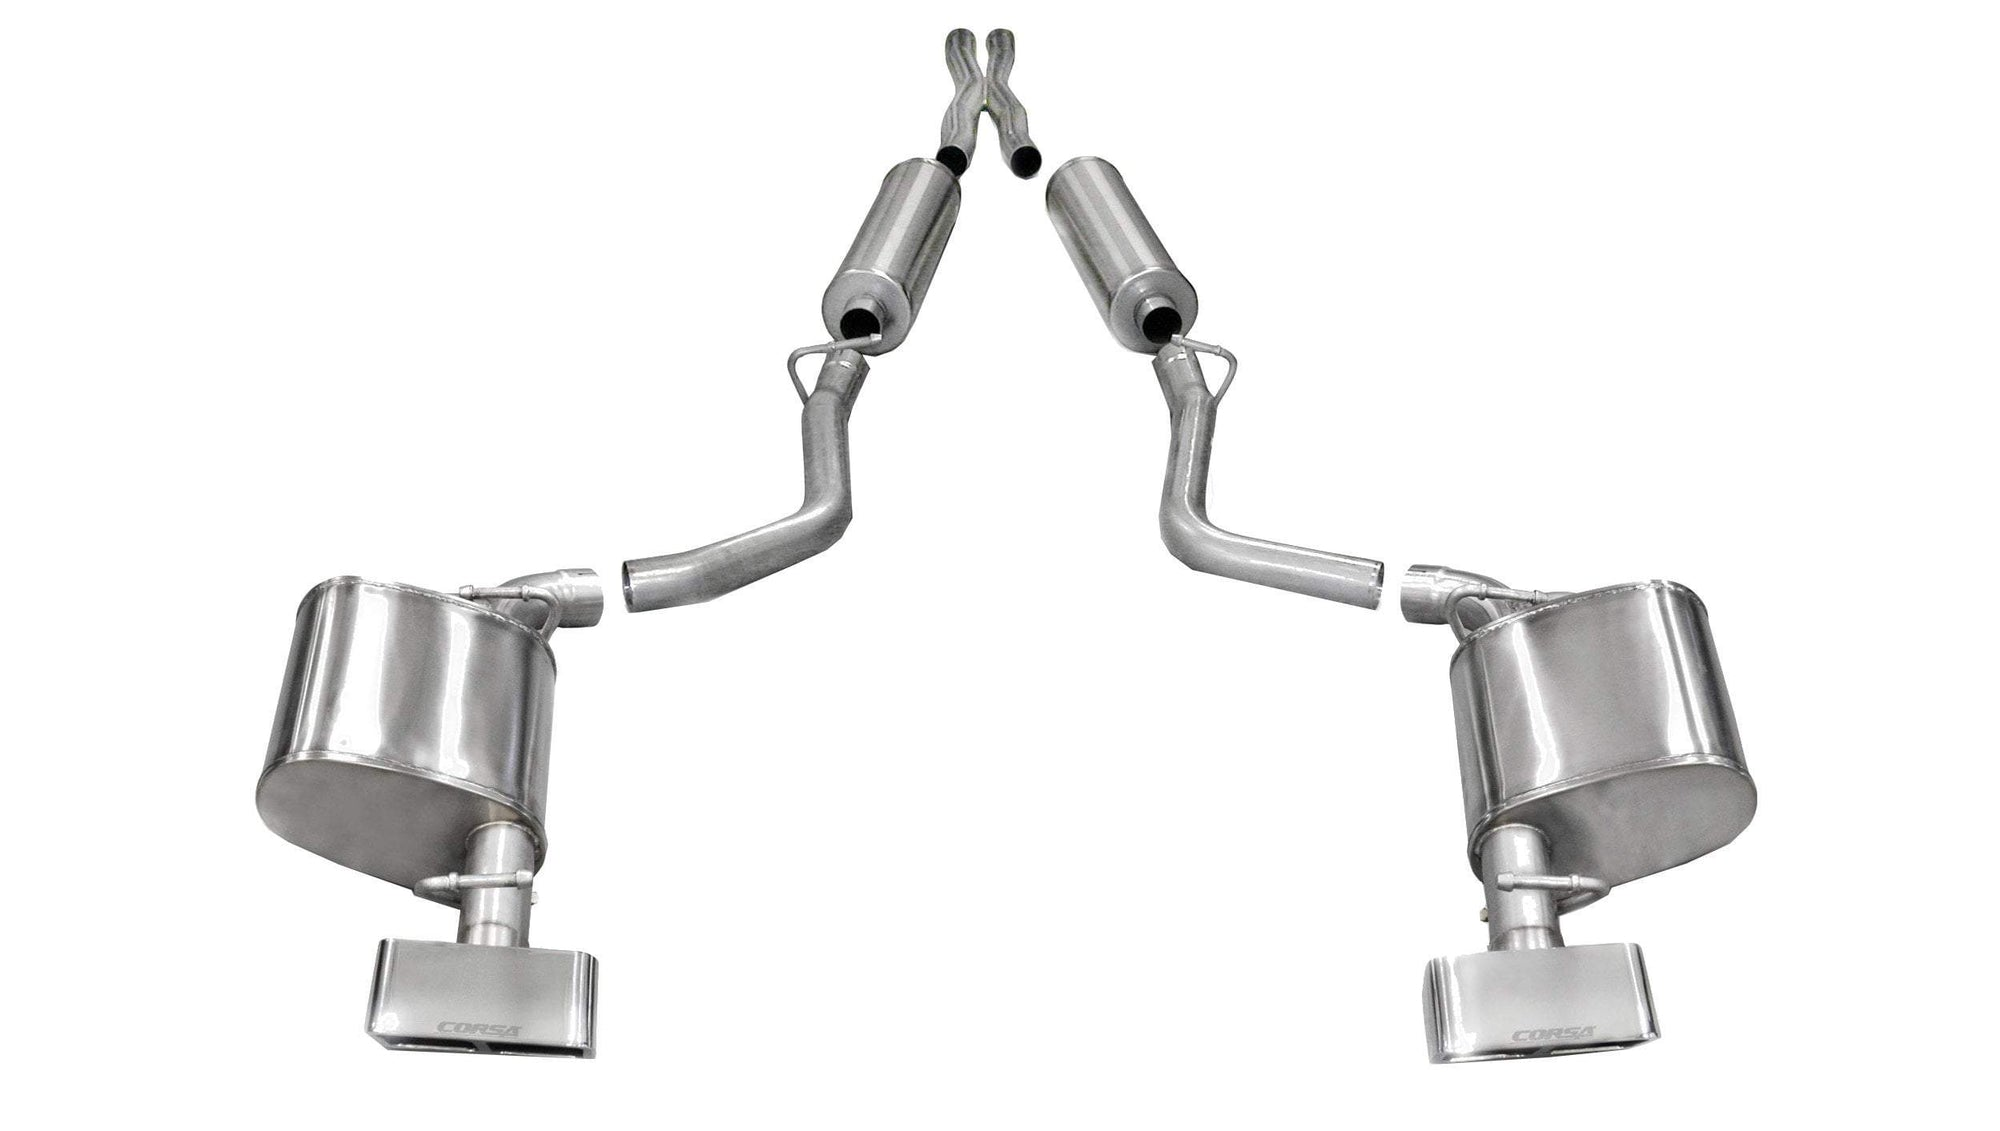 "CORSA PERFORMANCE Cat-Back Exhaust Polished / Sport / Dual Rear - GTX2 2011-2014 Dodge Challenger R/T, 5.7L V8, 2.5"" Dual Rear Exit Cat-Back Exhaust System with GTX2 Tips (14527) Sport Sound Level"